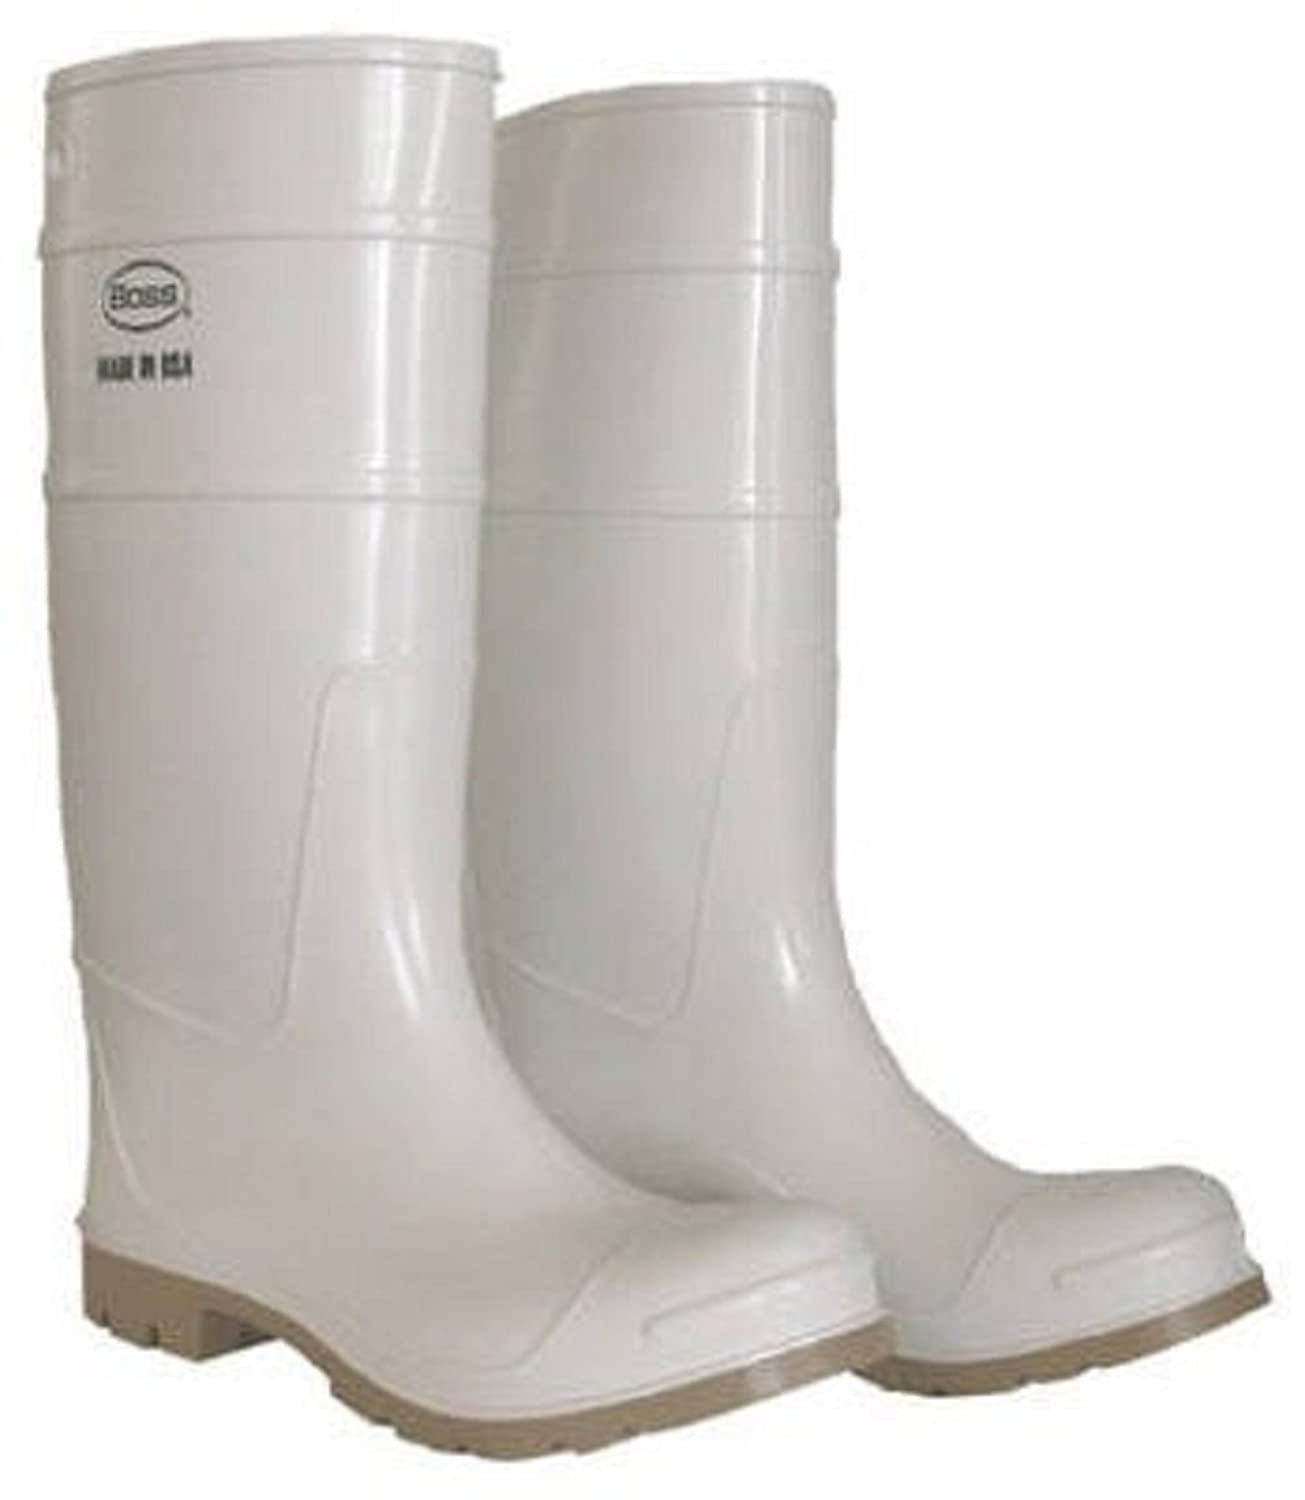 Boss Mfg 2PP192406 16-Inch Waterproof White Boot, Size 6 - Quantity 1